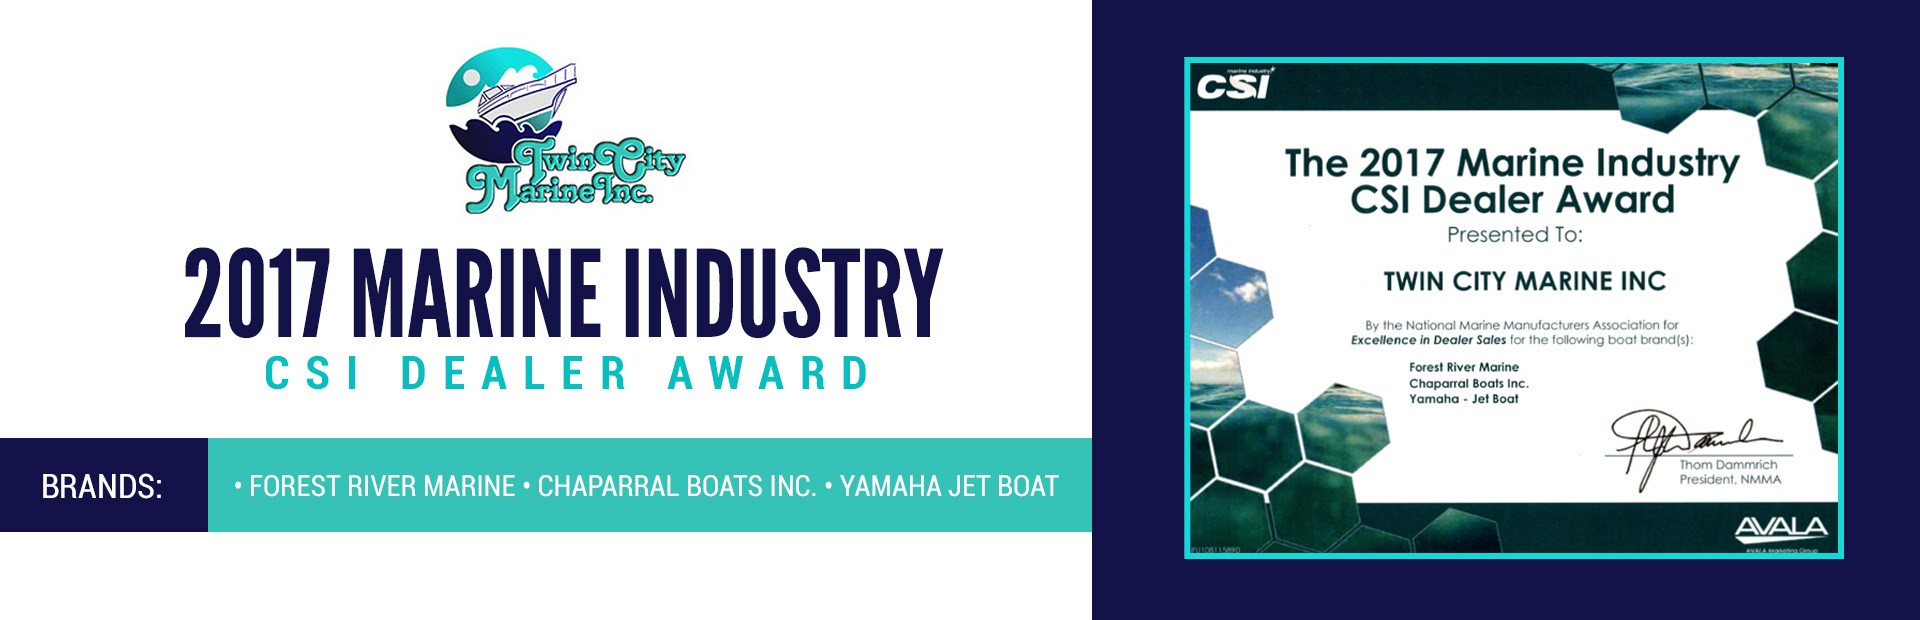 Twin City Marine received the 2017 Marine Industry CSI Dealer Award!